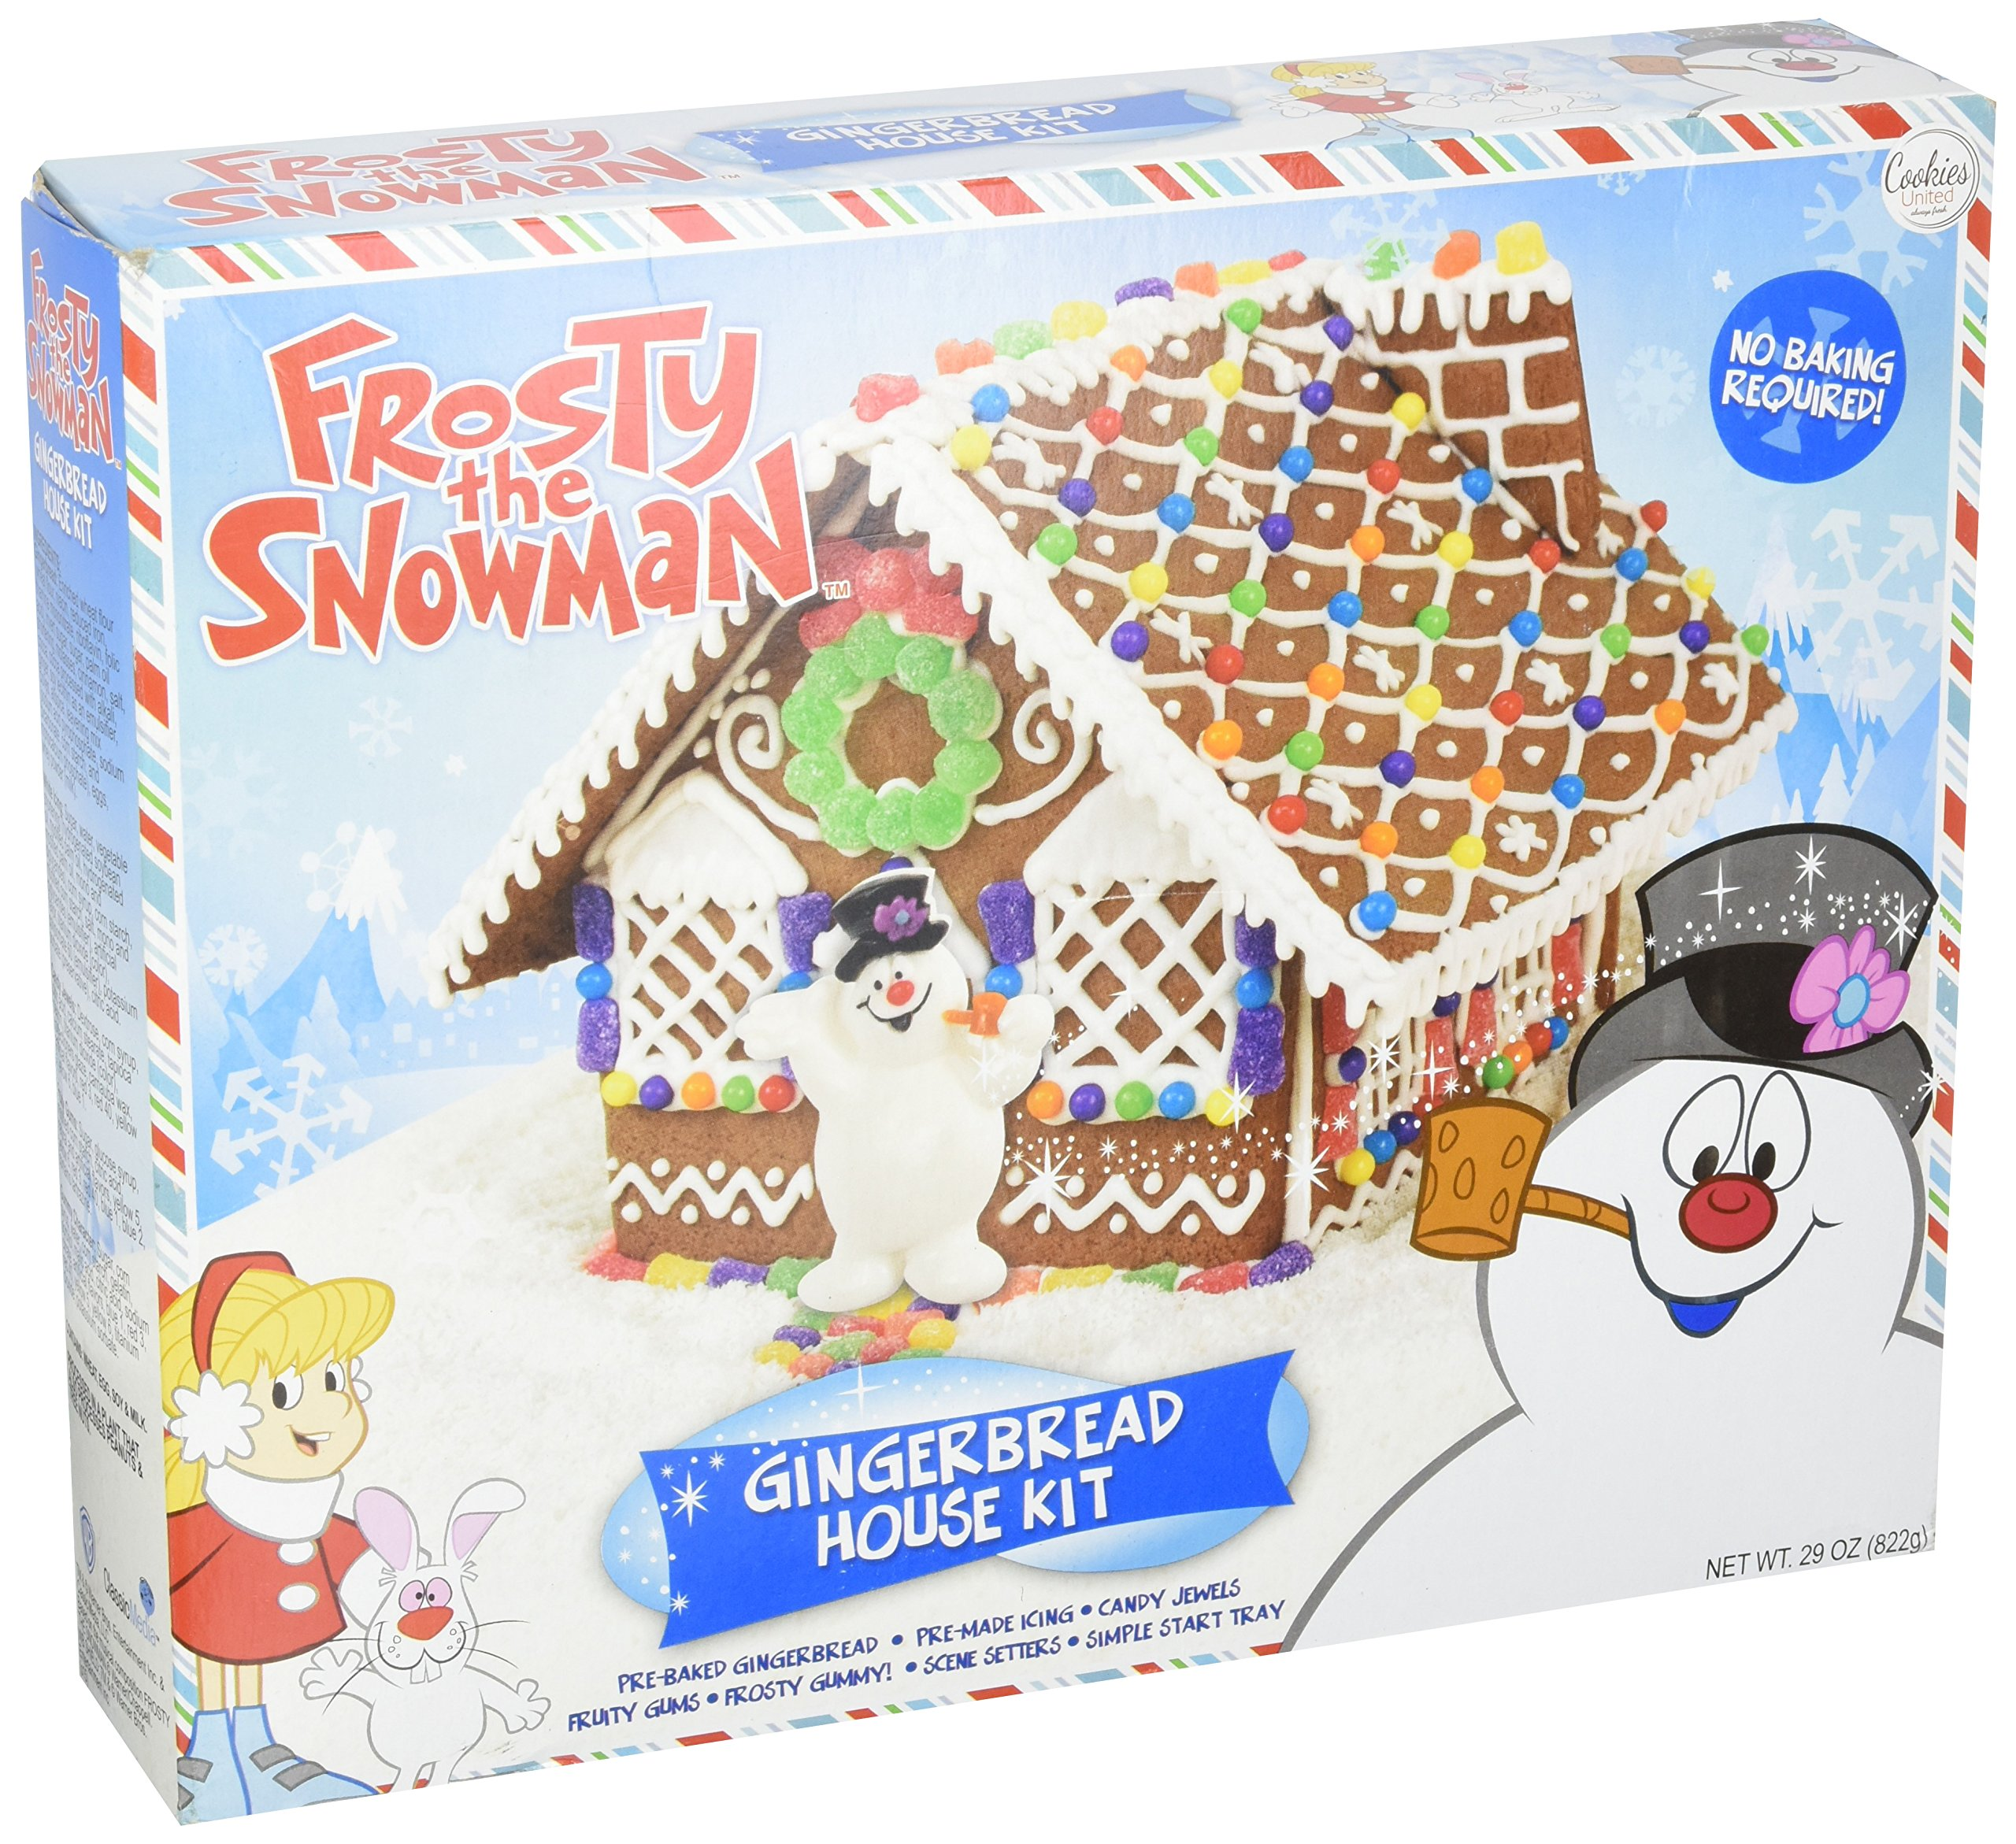 Frosty the Snowman Gingerbread House Kit